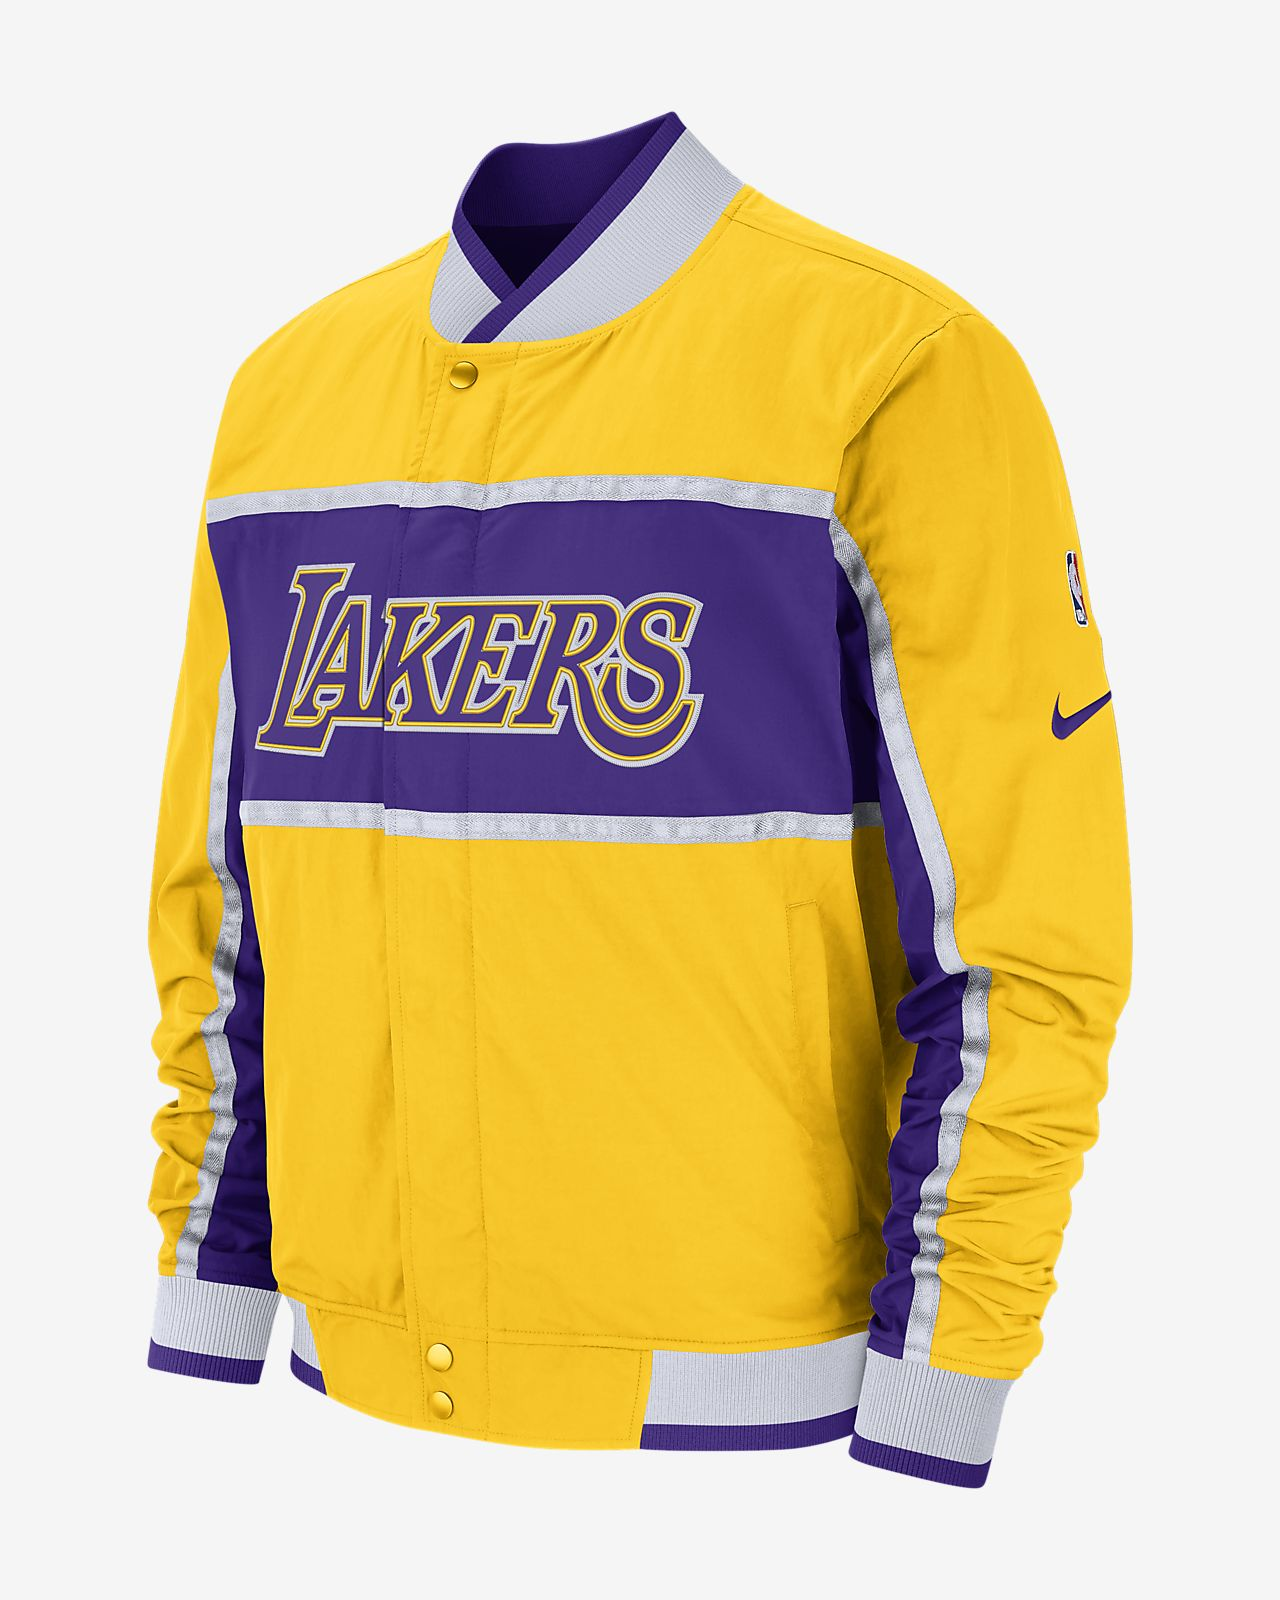 1fc74a2fc37 Los Angeles Lakers Nike Courtside Men s NBA Jacket. Nike.com AT